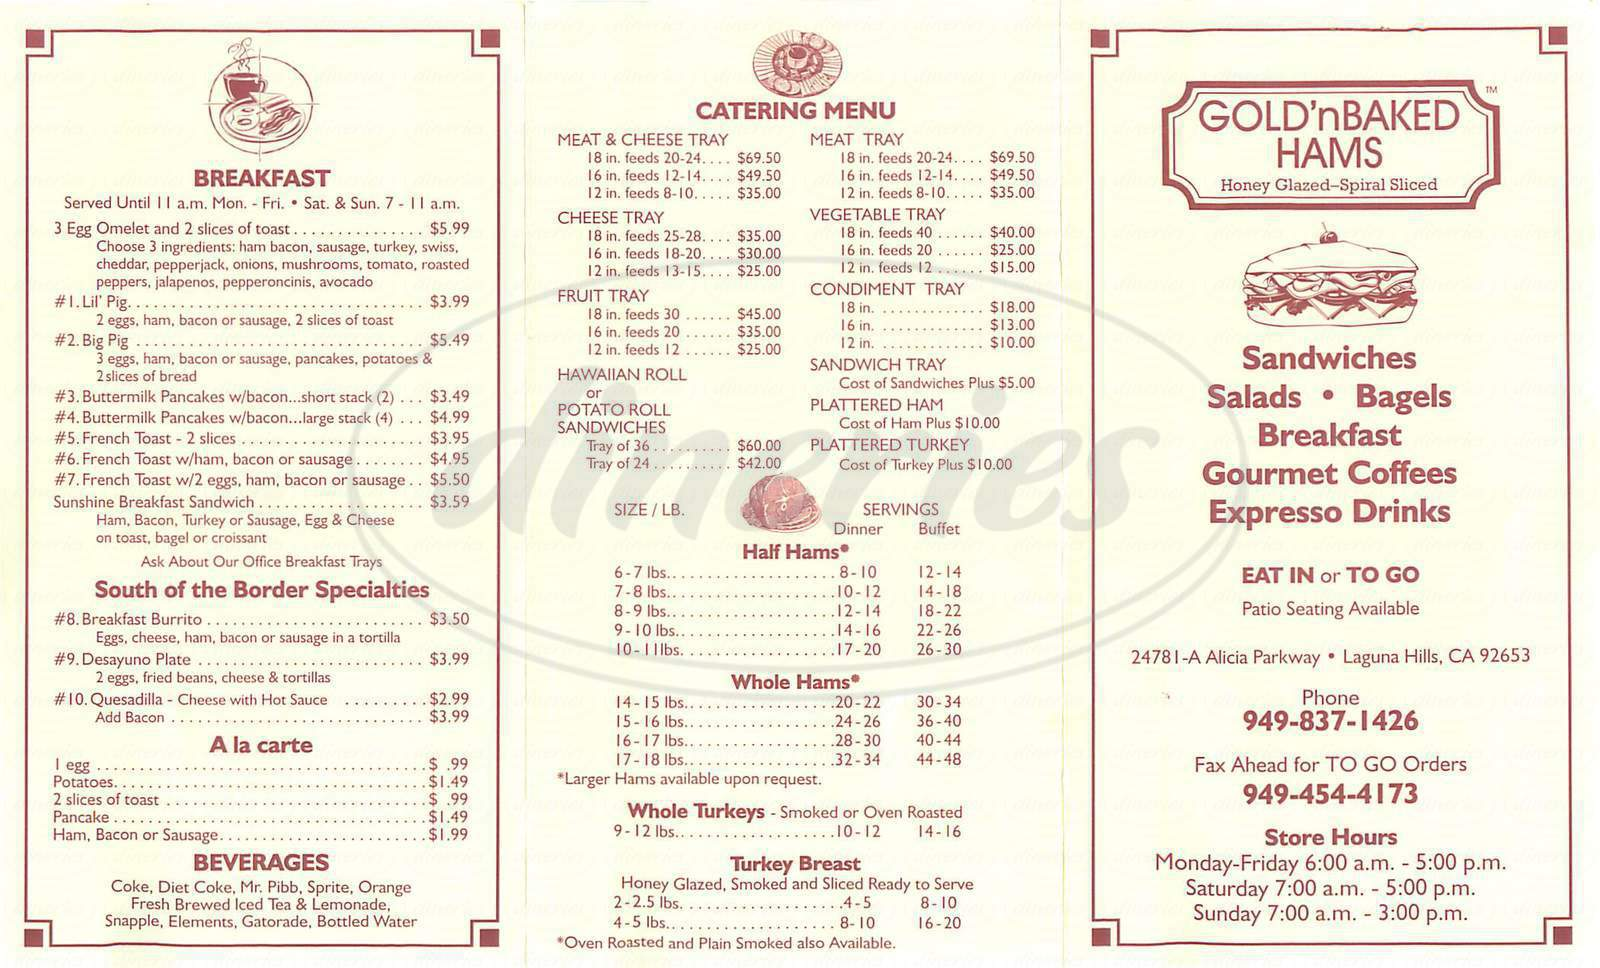 menu for Gold'n Baked Hams